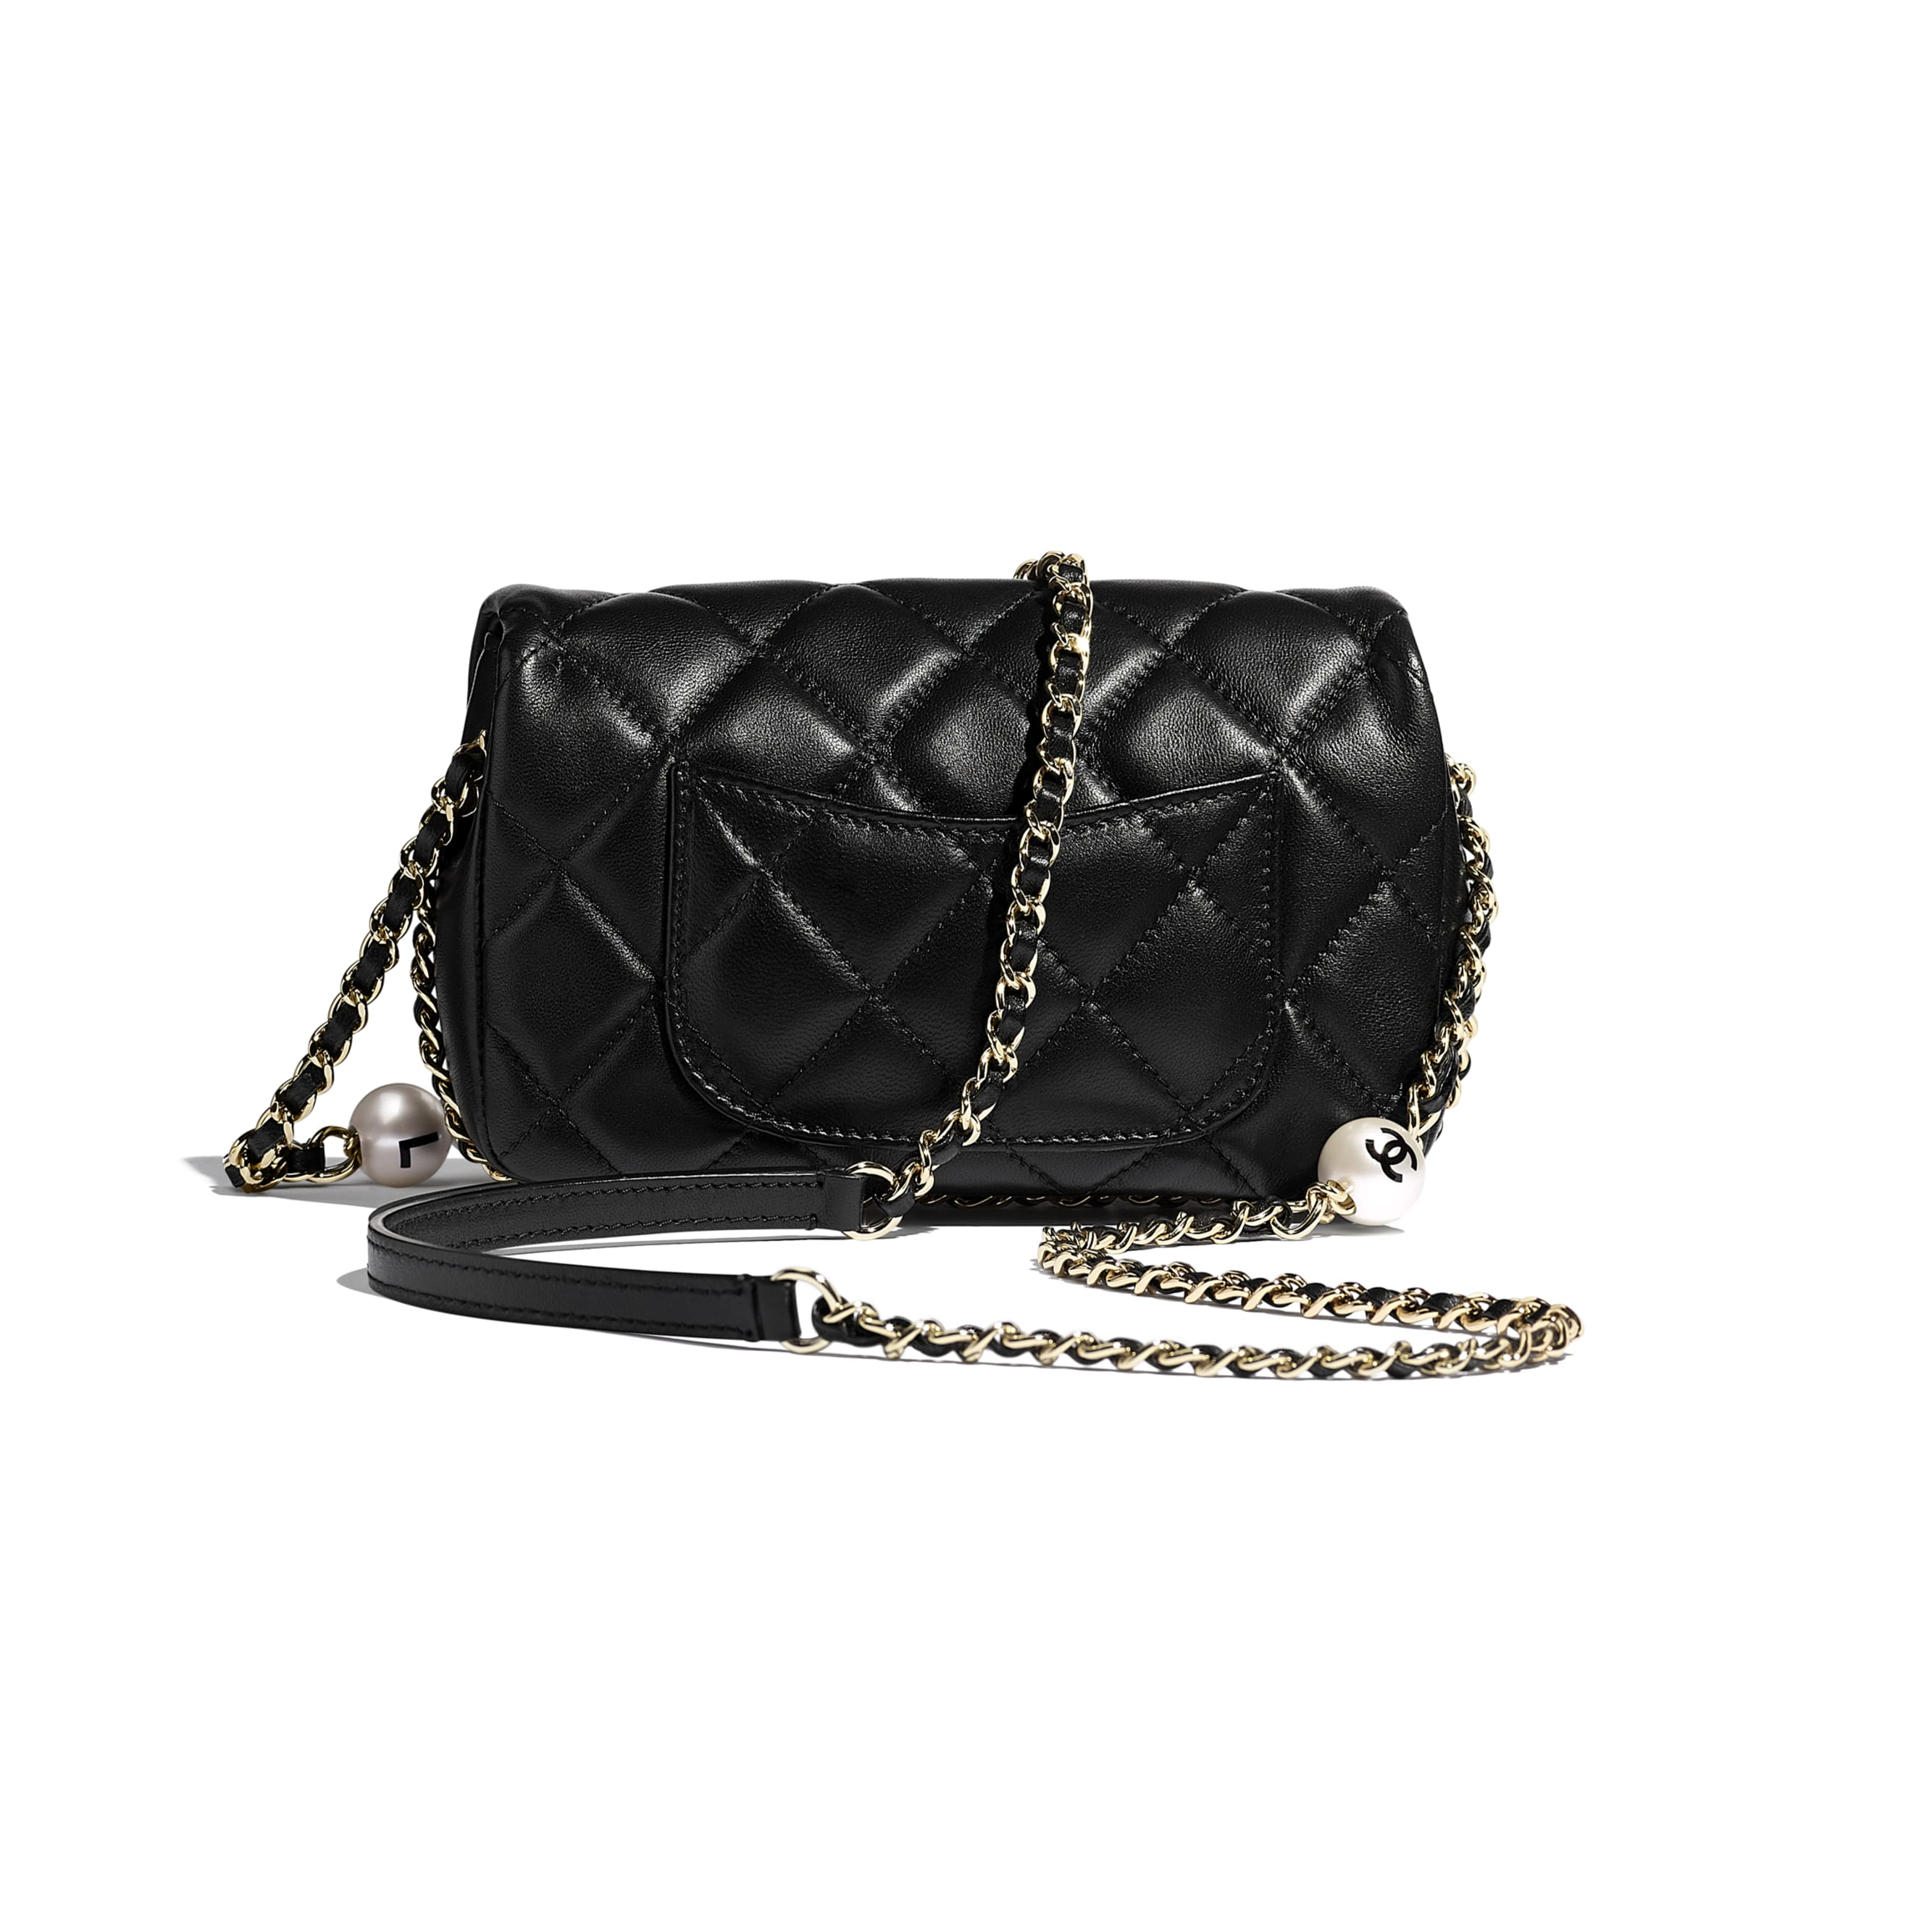 Small Flap Bag - Black - Lambskin, Imitation Pearls & Gold Metal - CHANEL - Alternative view - see standard sized version